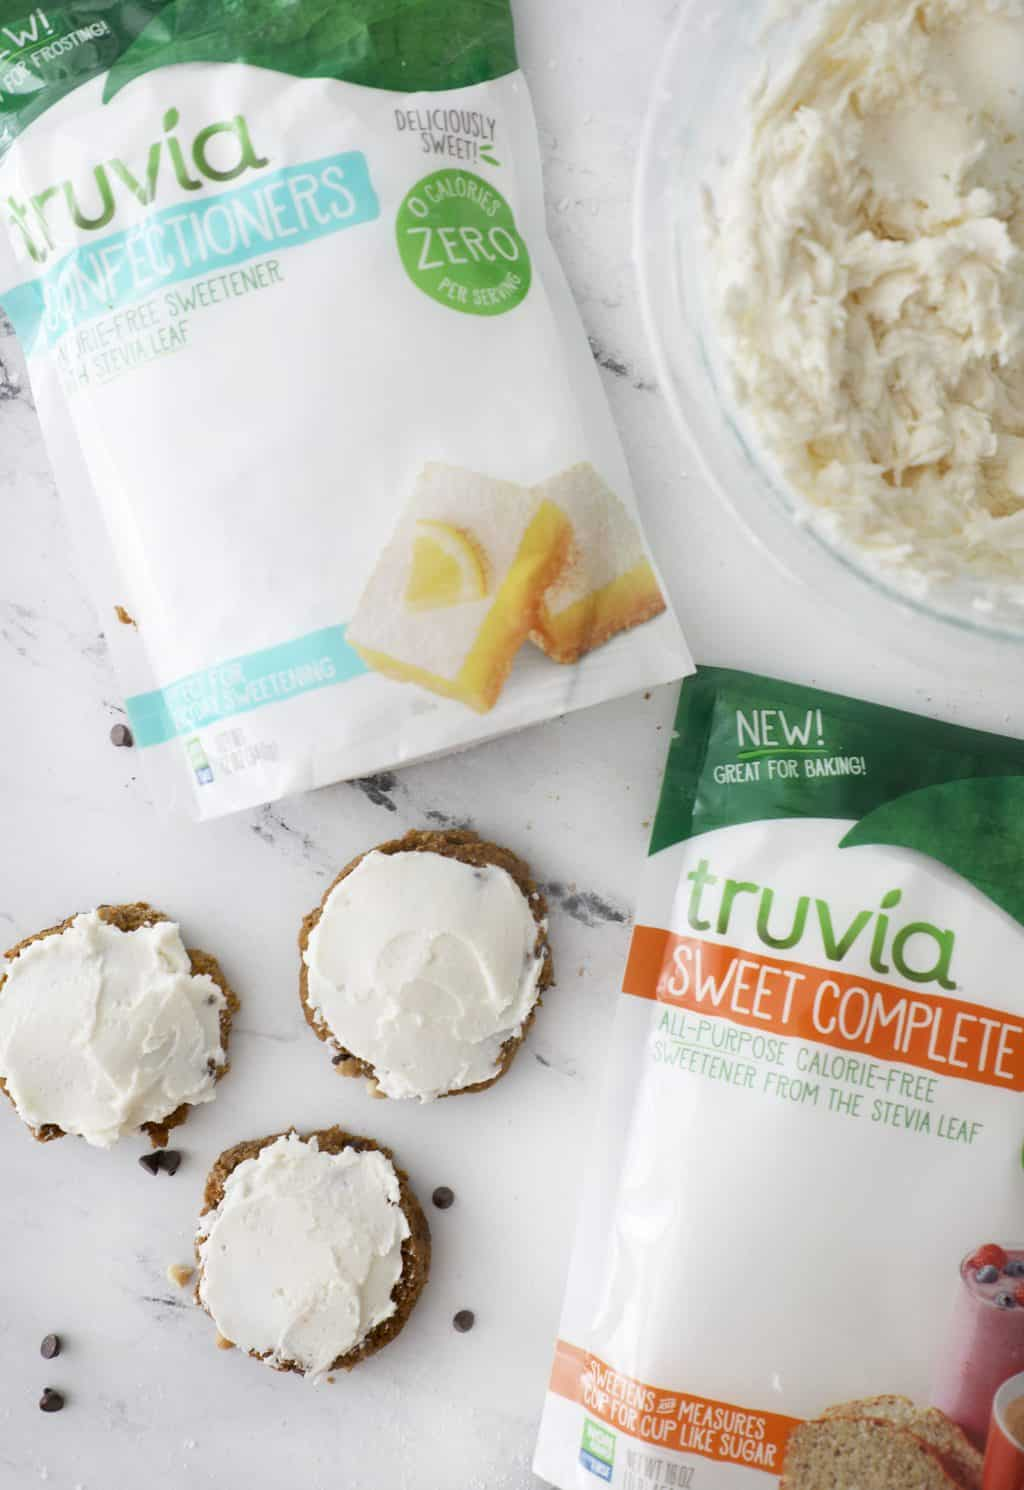 Truvia Sweet Complete next to cookies and Truvia Confectioners next to frosting